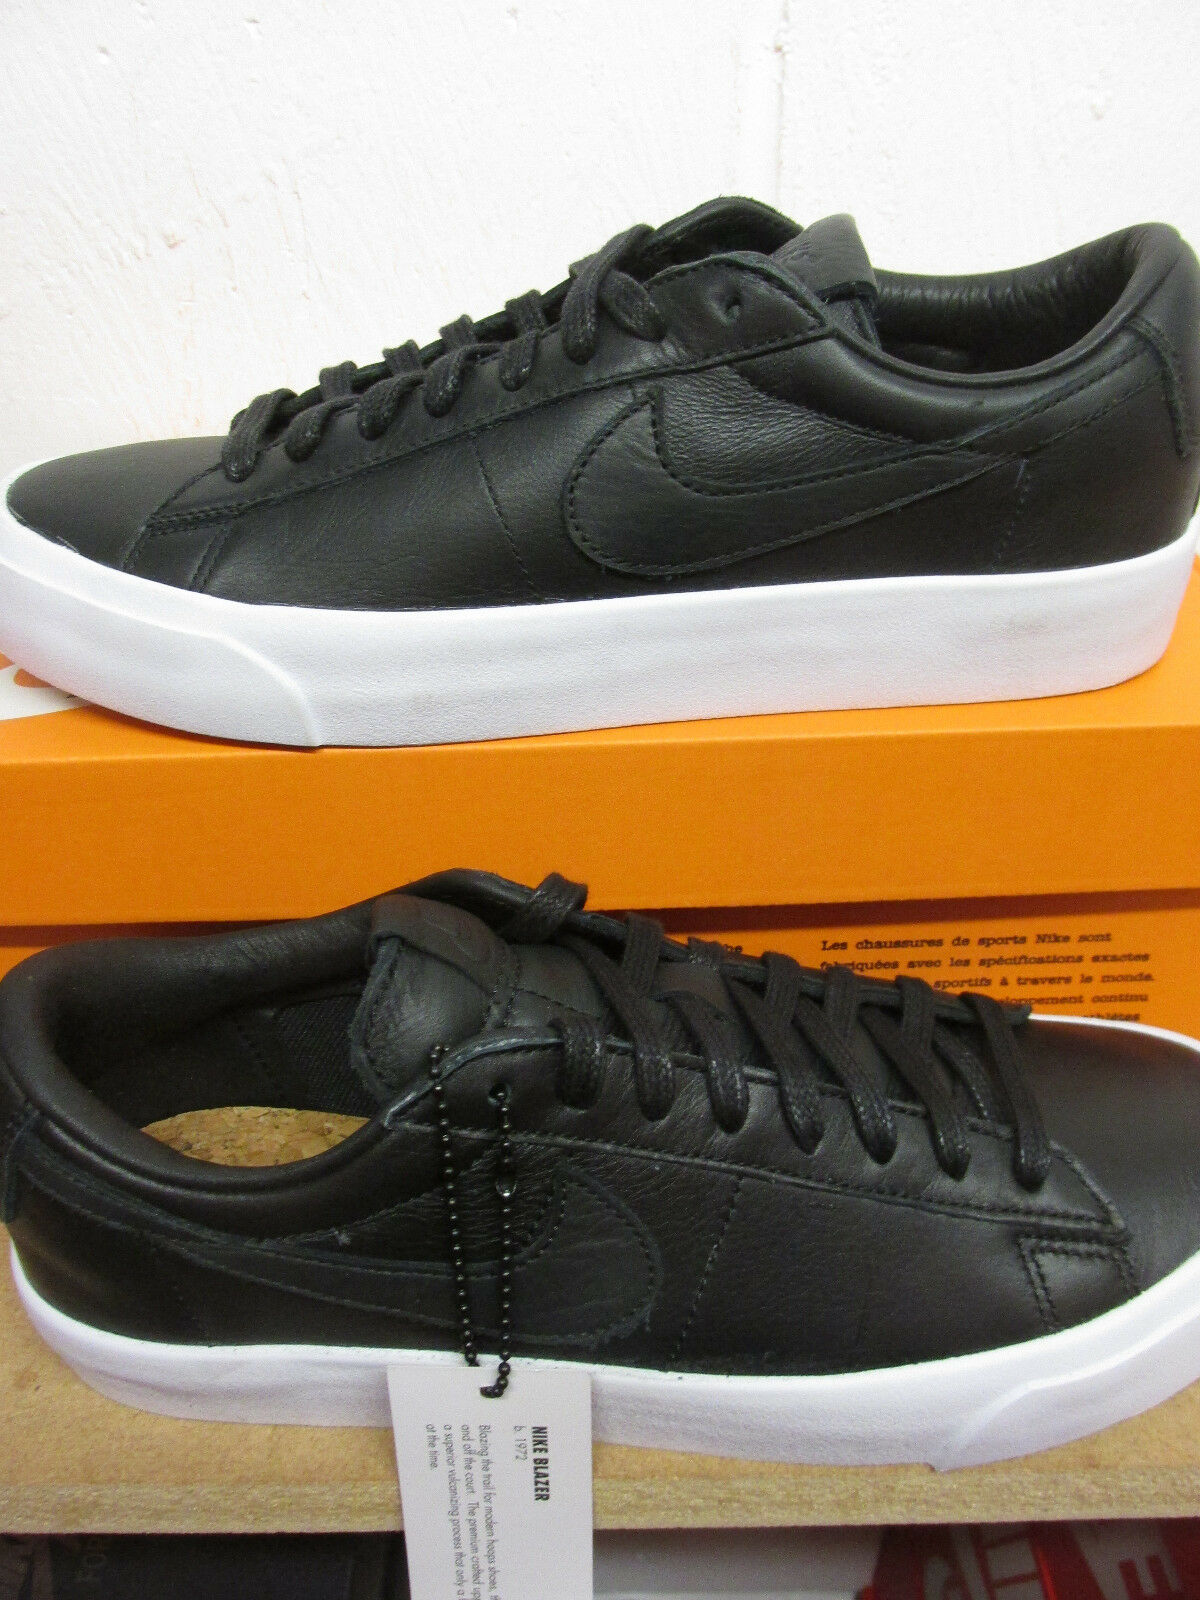 Nike Blazer Studio Qs Baskets Hommes 850478 002 Baskets